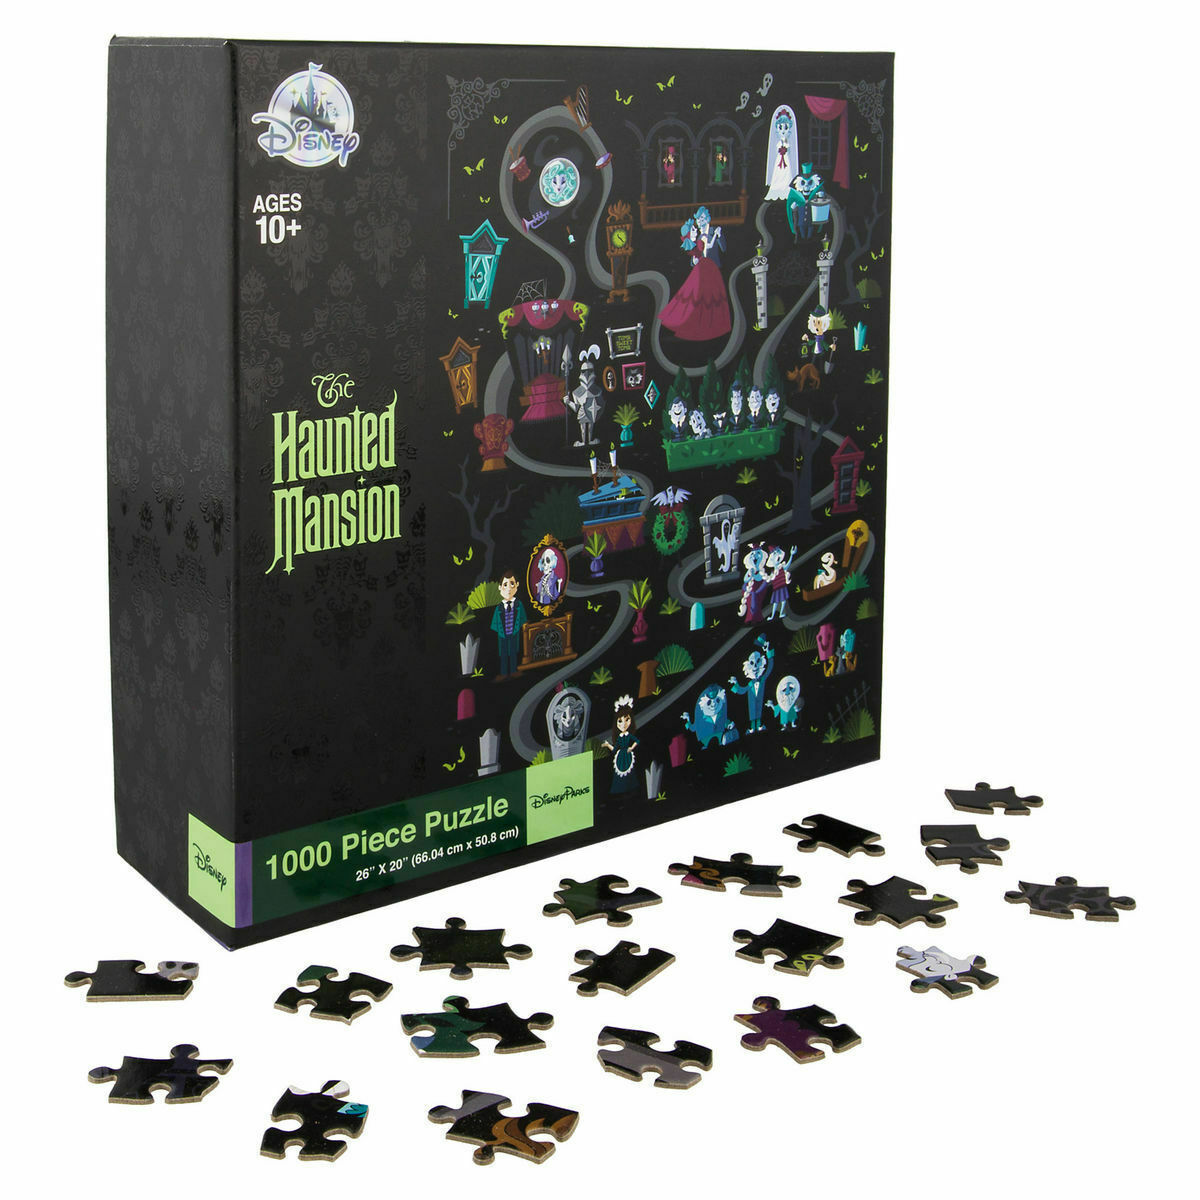 Disney Parks The Haunted Mansion Jigsaw Puzzle 1000 Pieces New with Box